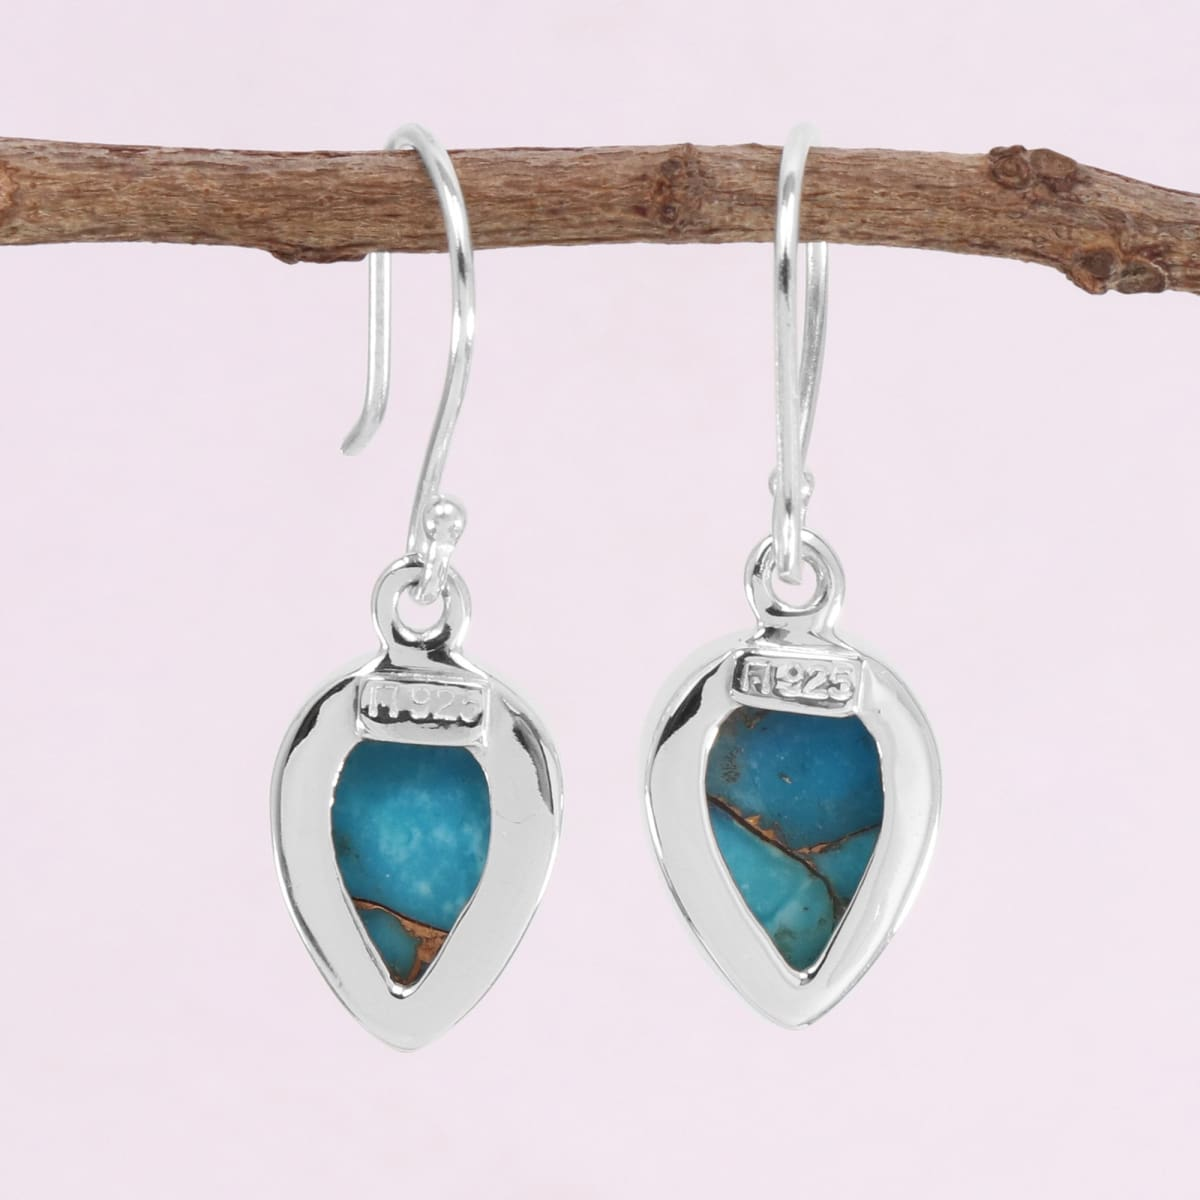 Blue Copper Turquoise 925 Sterling Silver Handmade Earring Dangle For Her Statement Minimalist